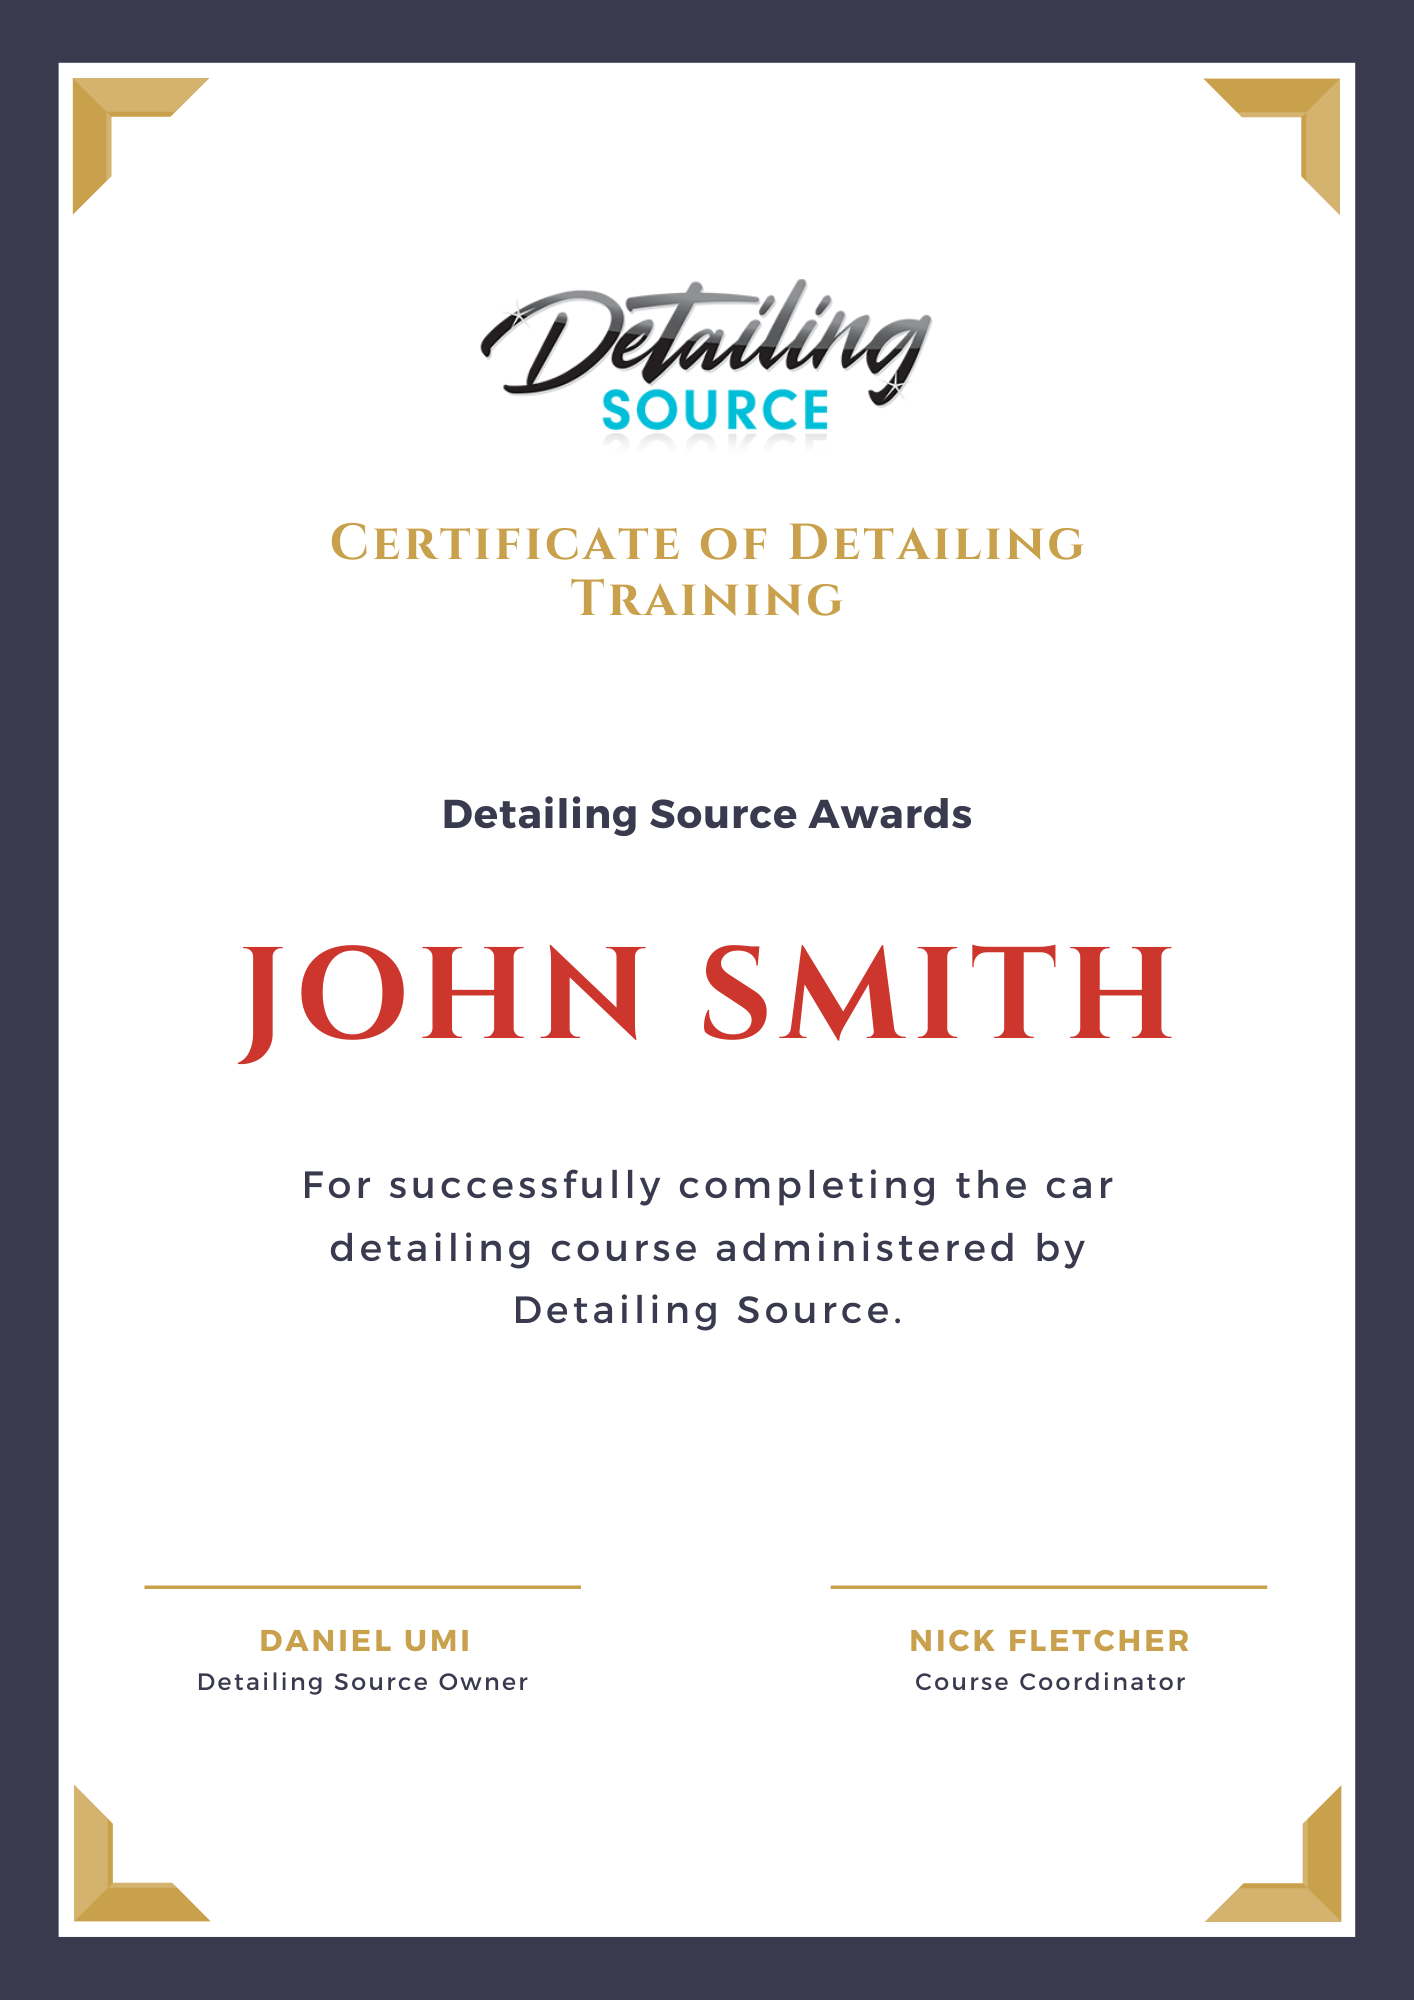 Detailing Source certificate for car detailing course.